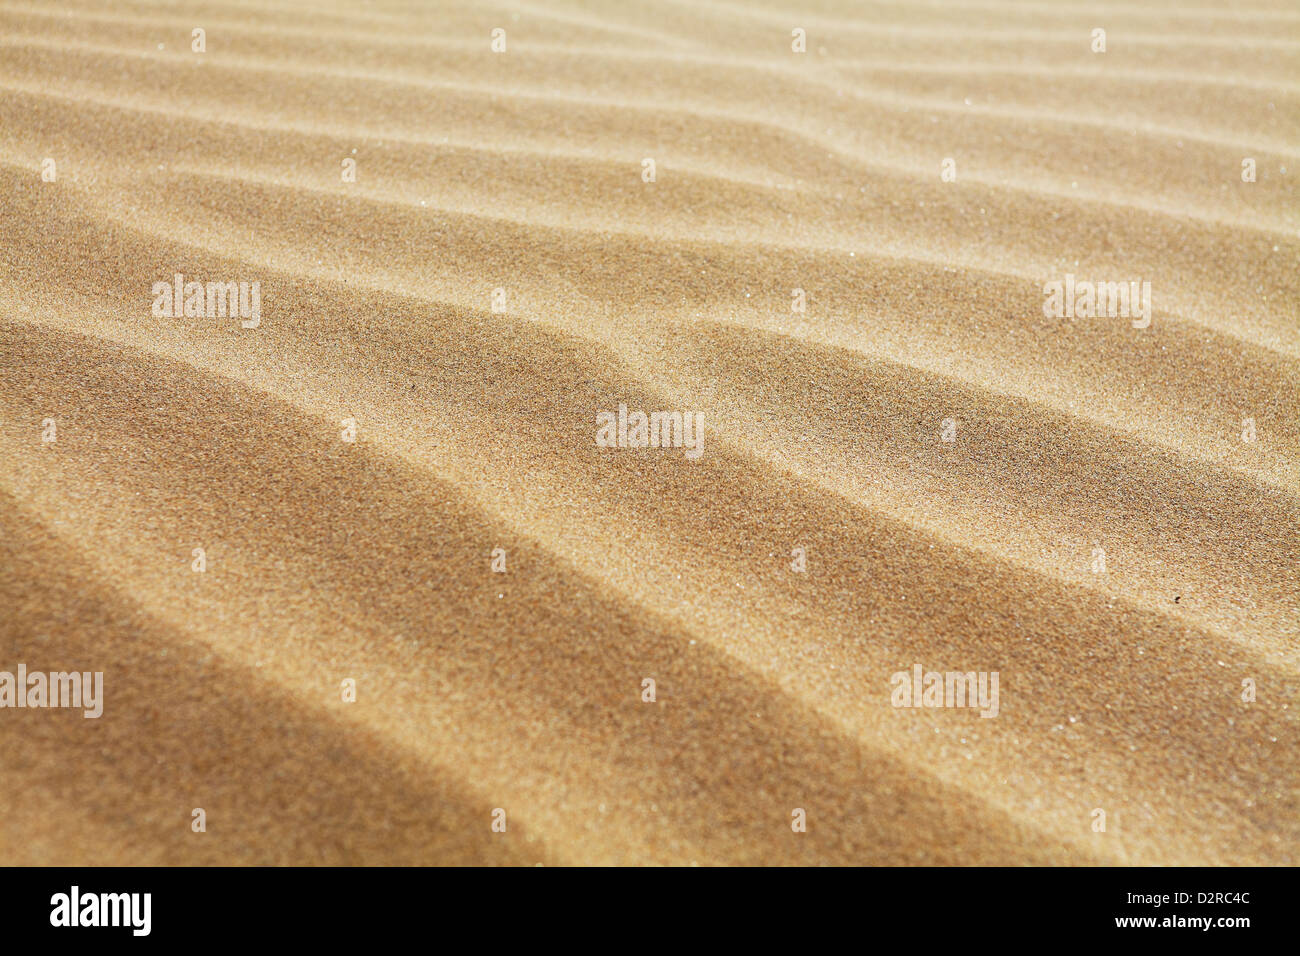 Sand abstract background - Stock Image